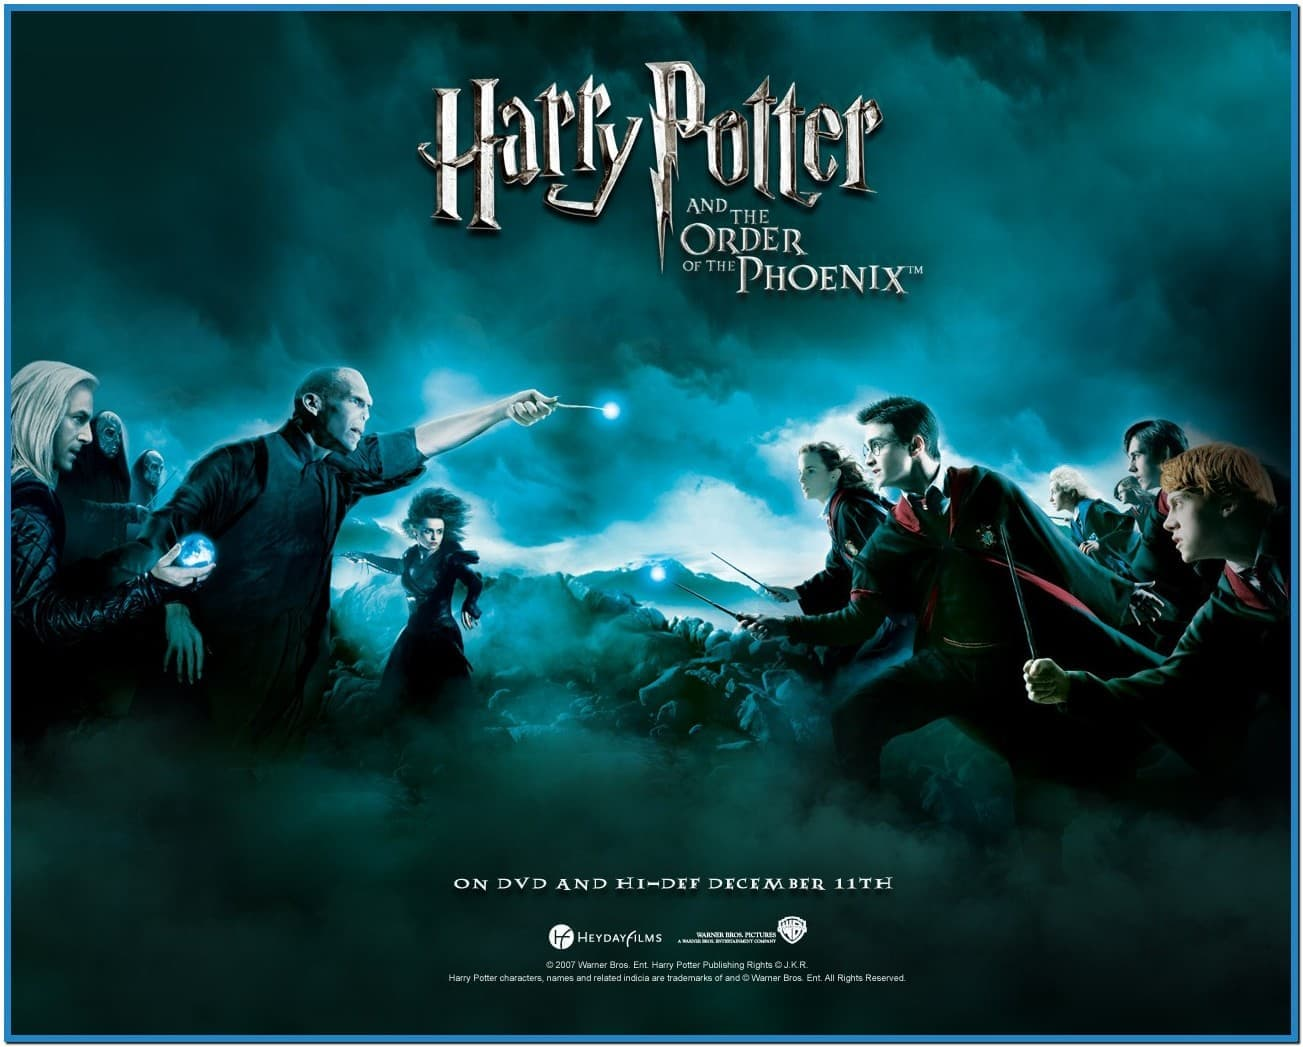 3d harry potter wallpaper 470574 - 3d harry potter wallpaper